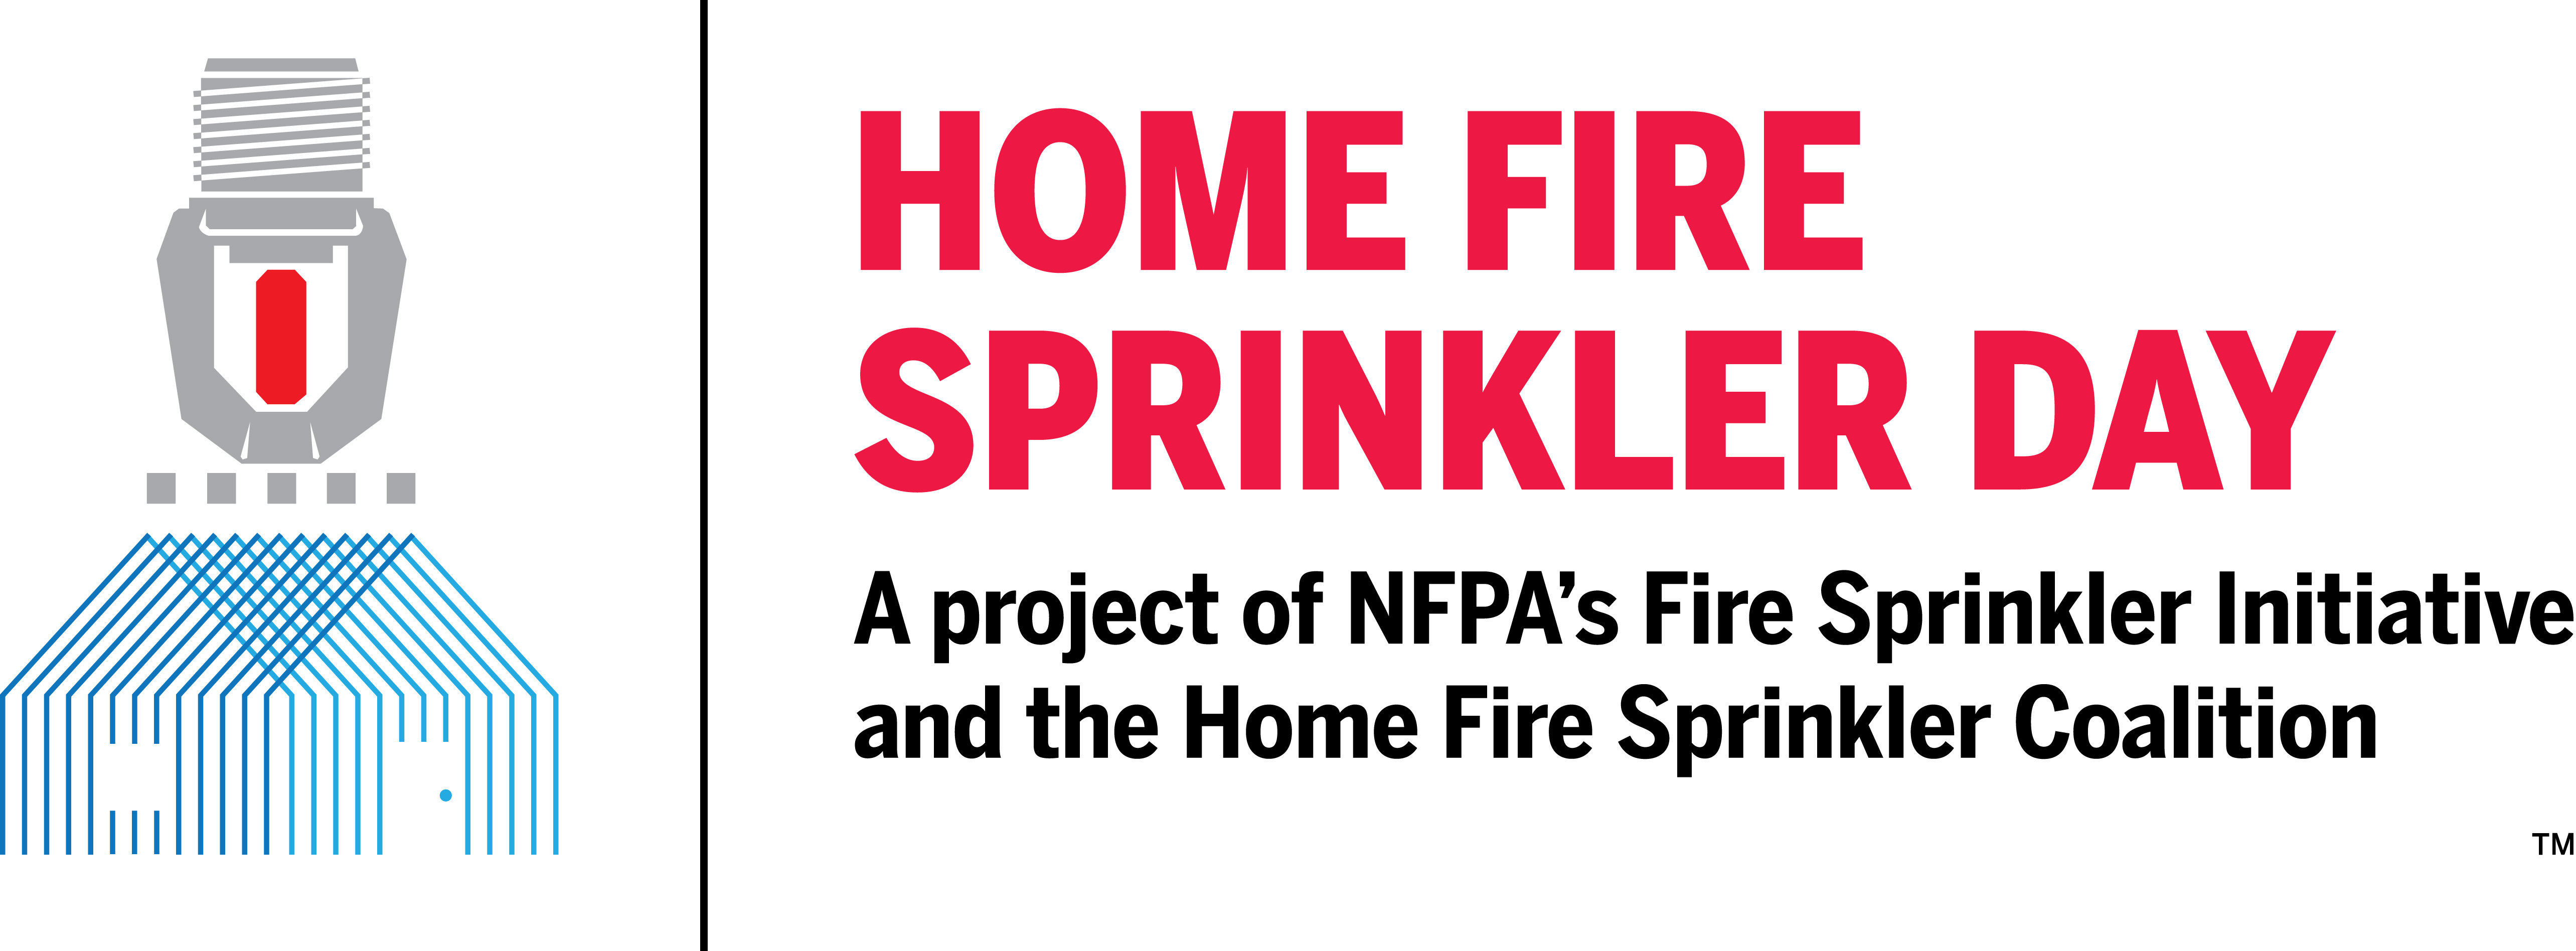 Home Fire Sprinkler Day